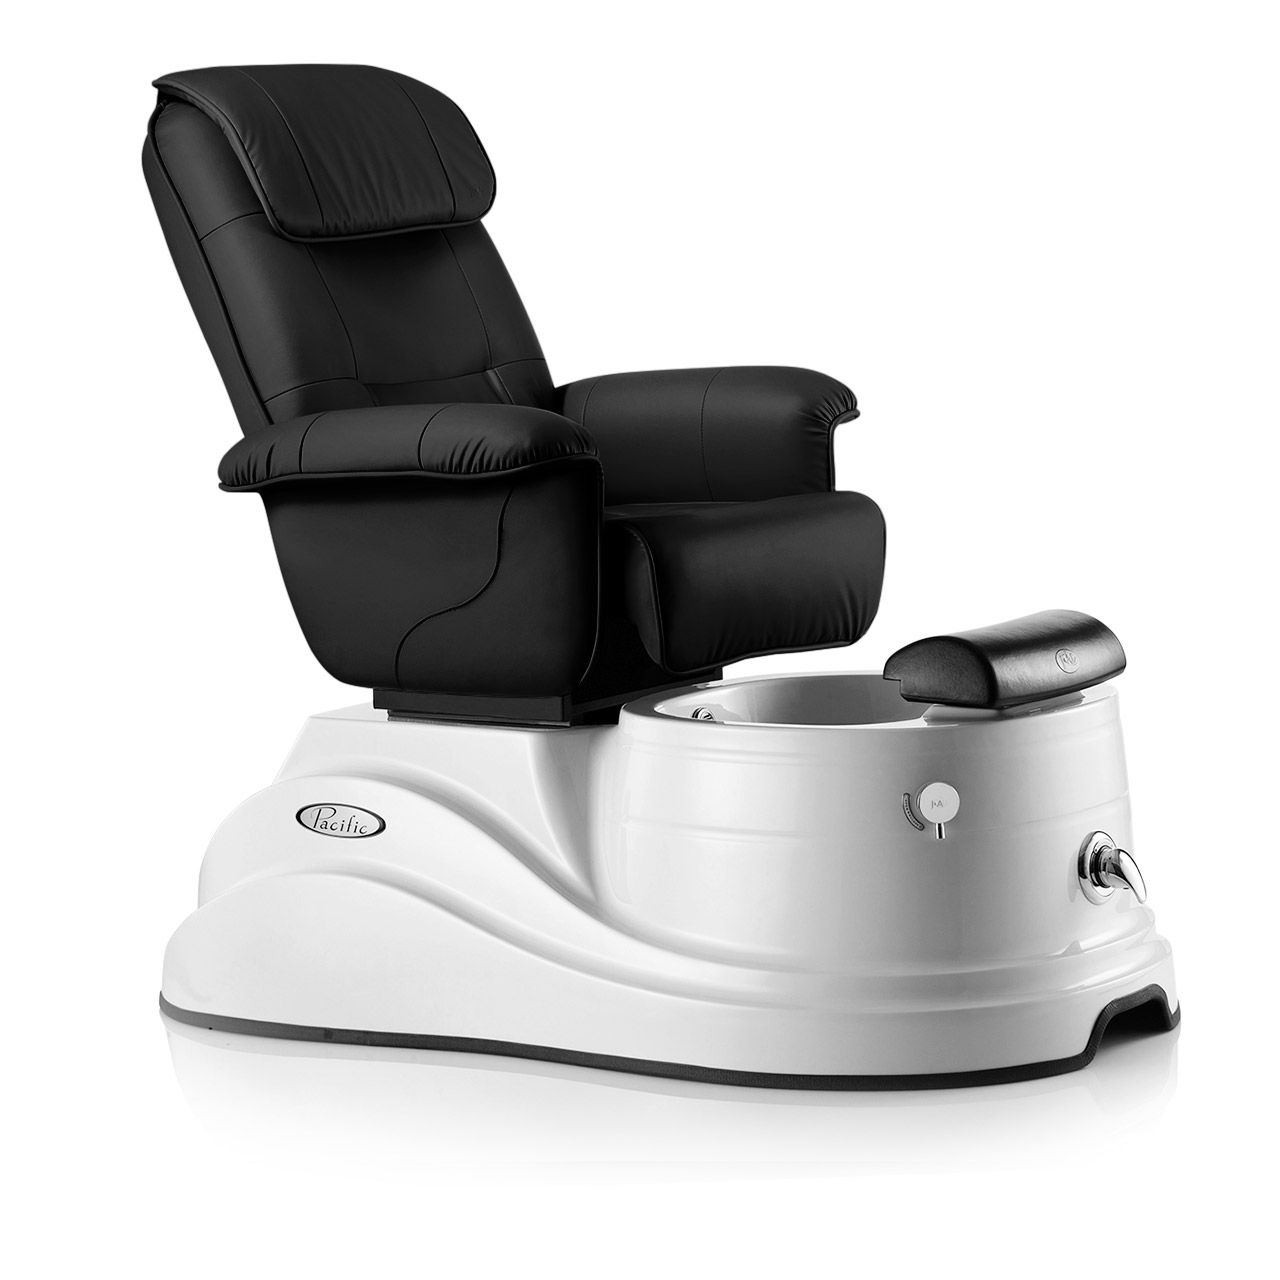 Black 2 Pacific DS Pedicure Chair Package & Manicure Station alternative product image 1